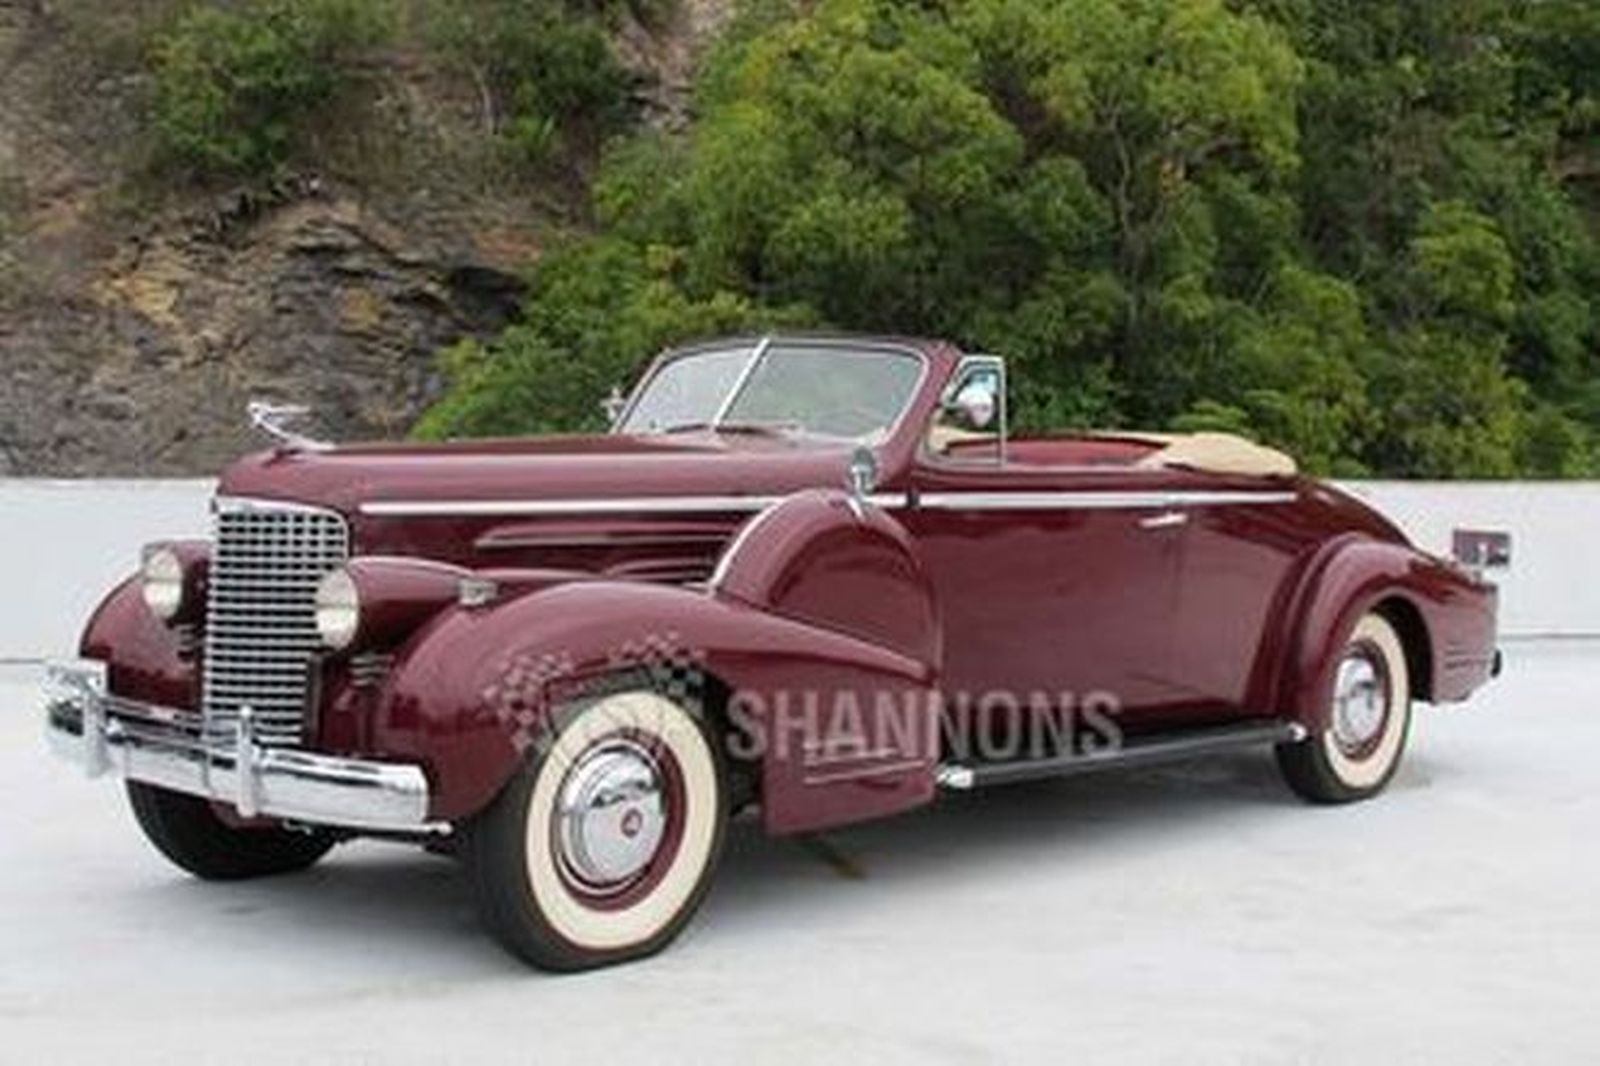 Cadillac V16 Series 38-90 Convertible Coupe (LHD)